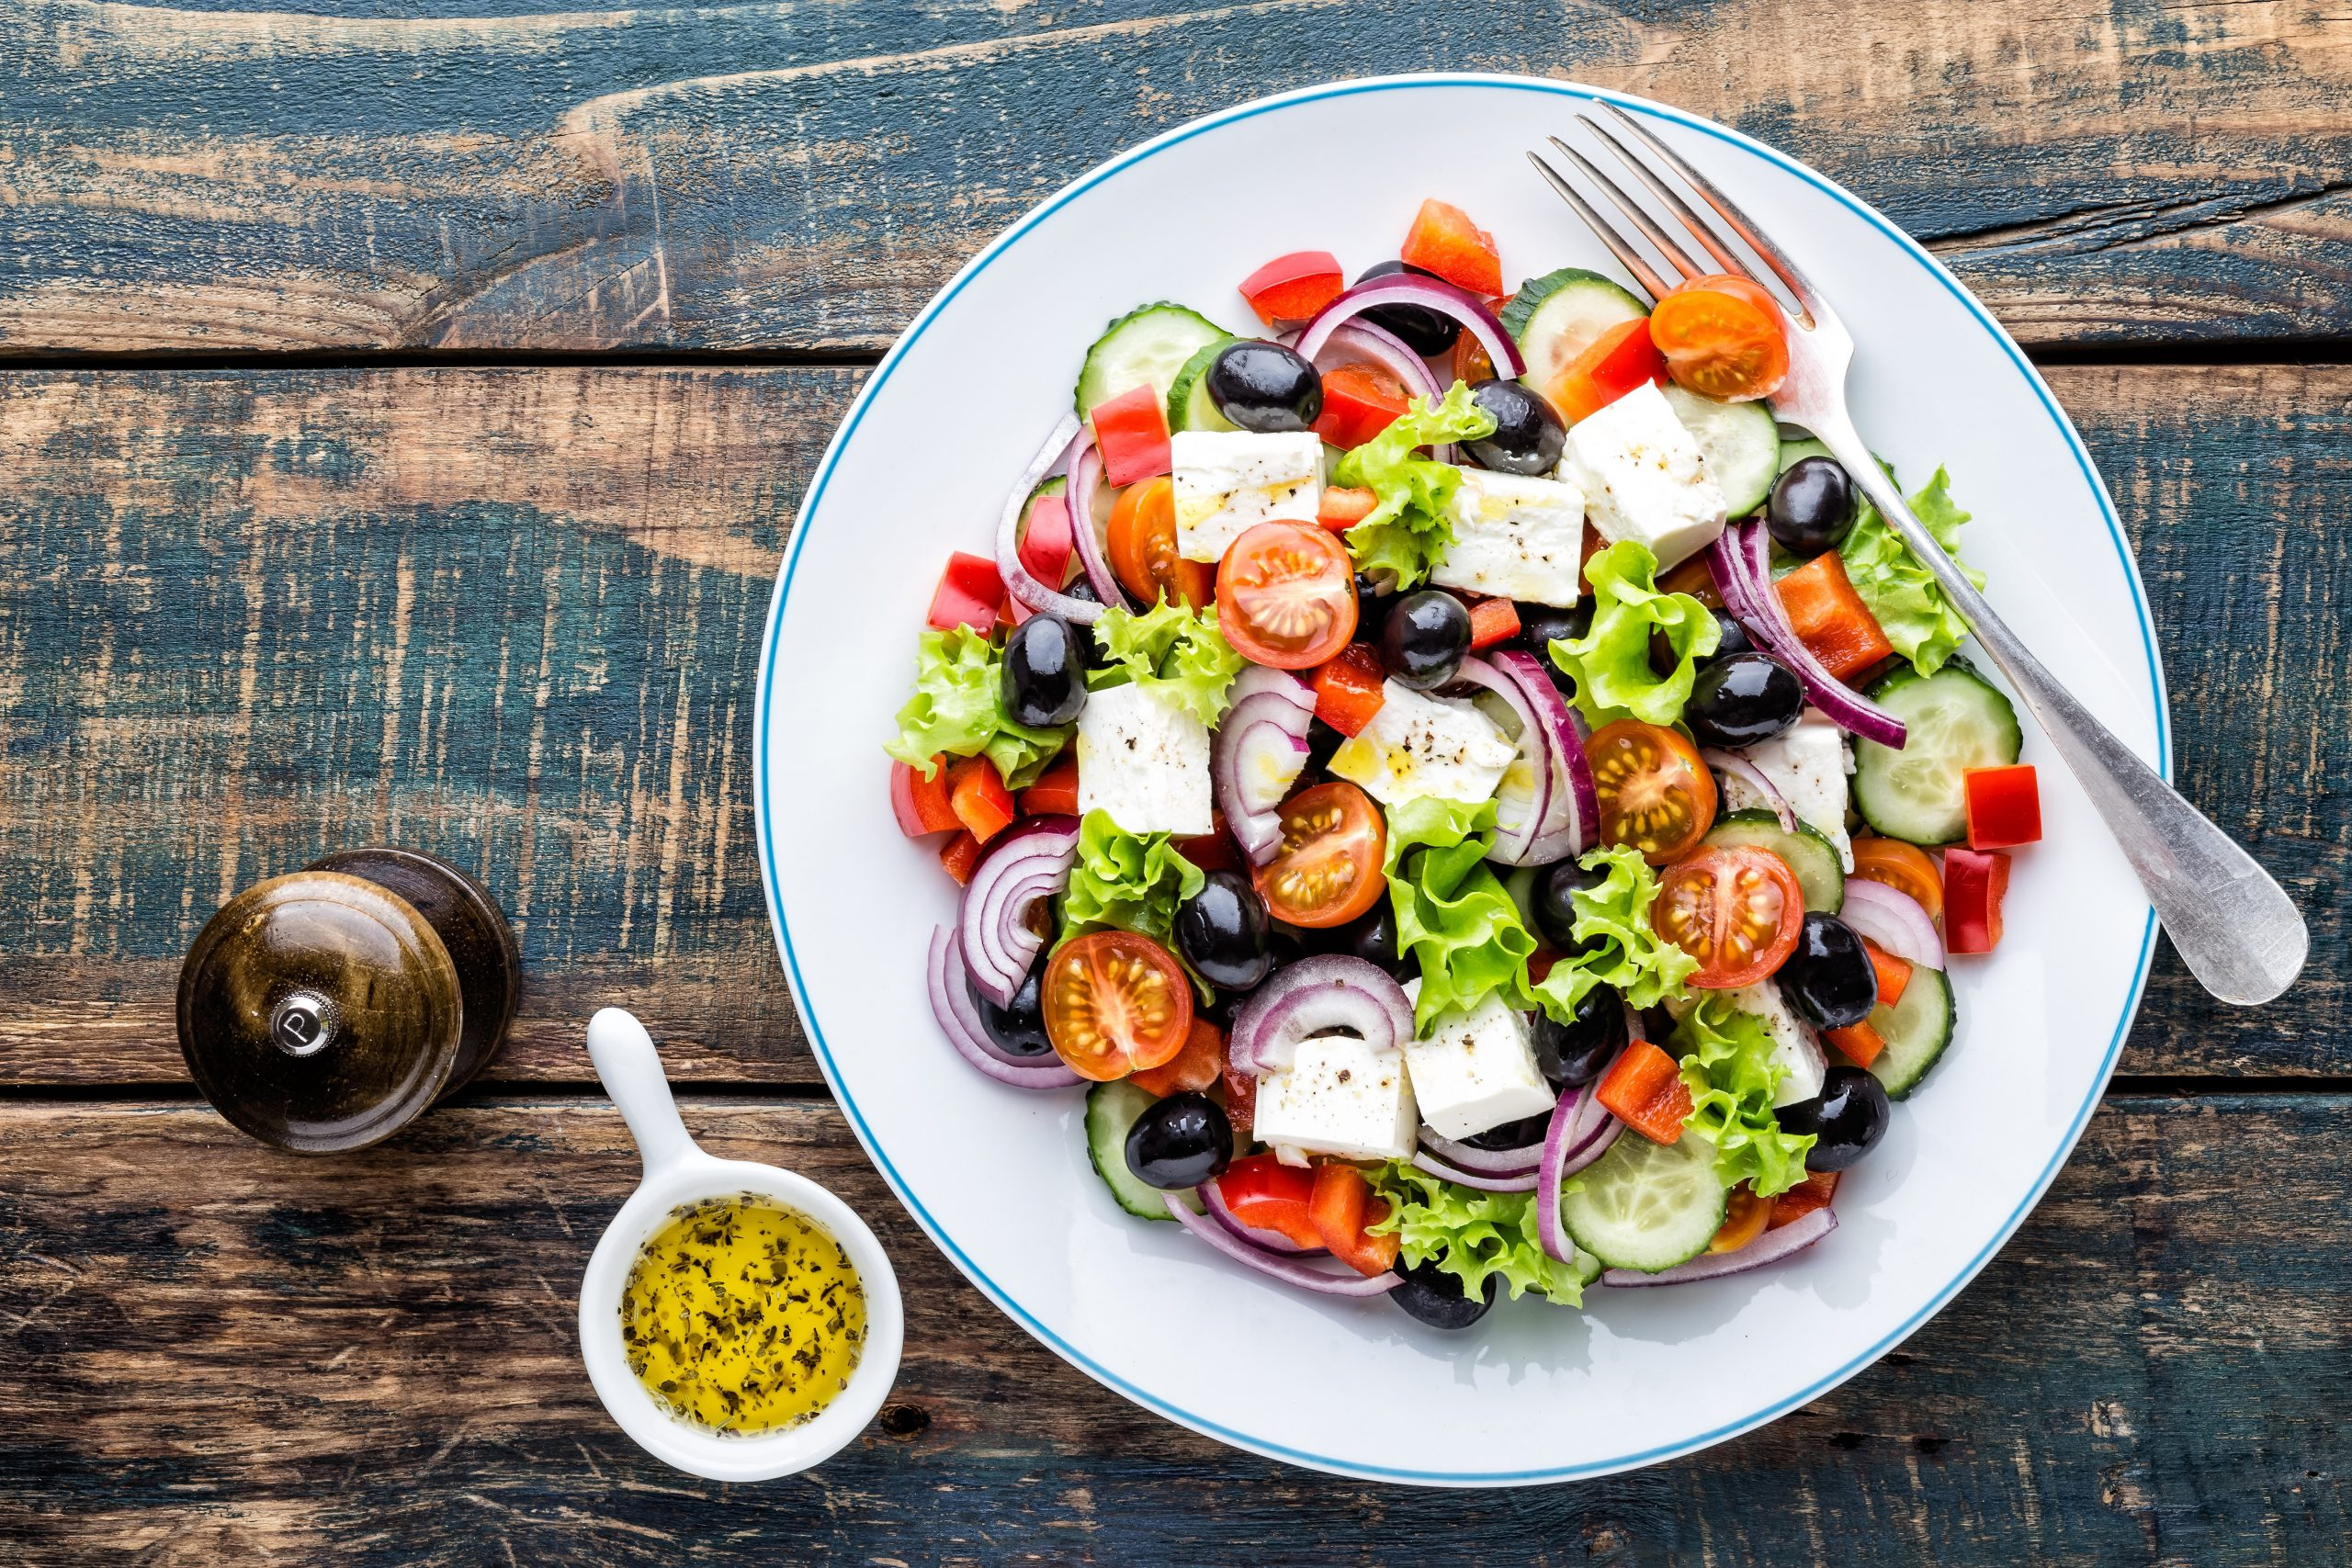 Greek salad with tomatoes